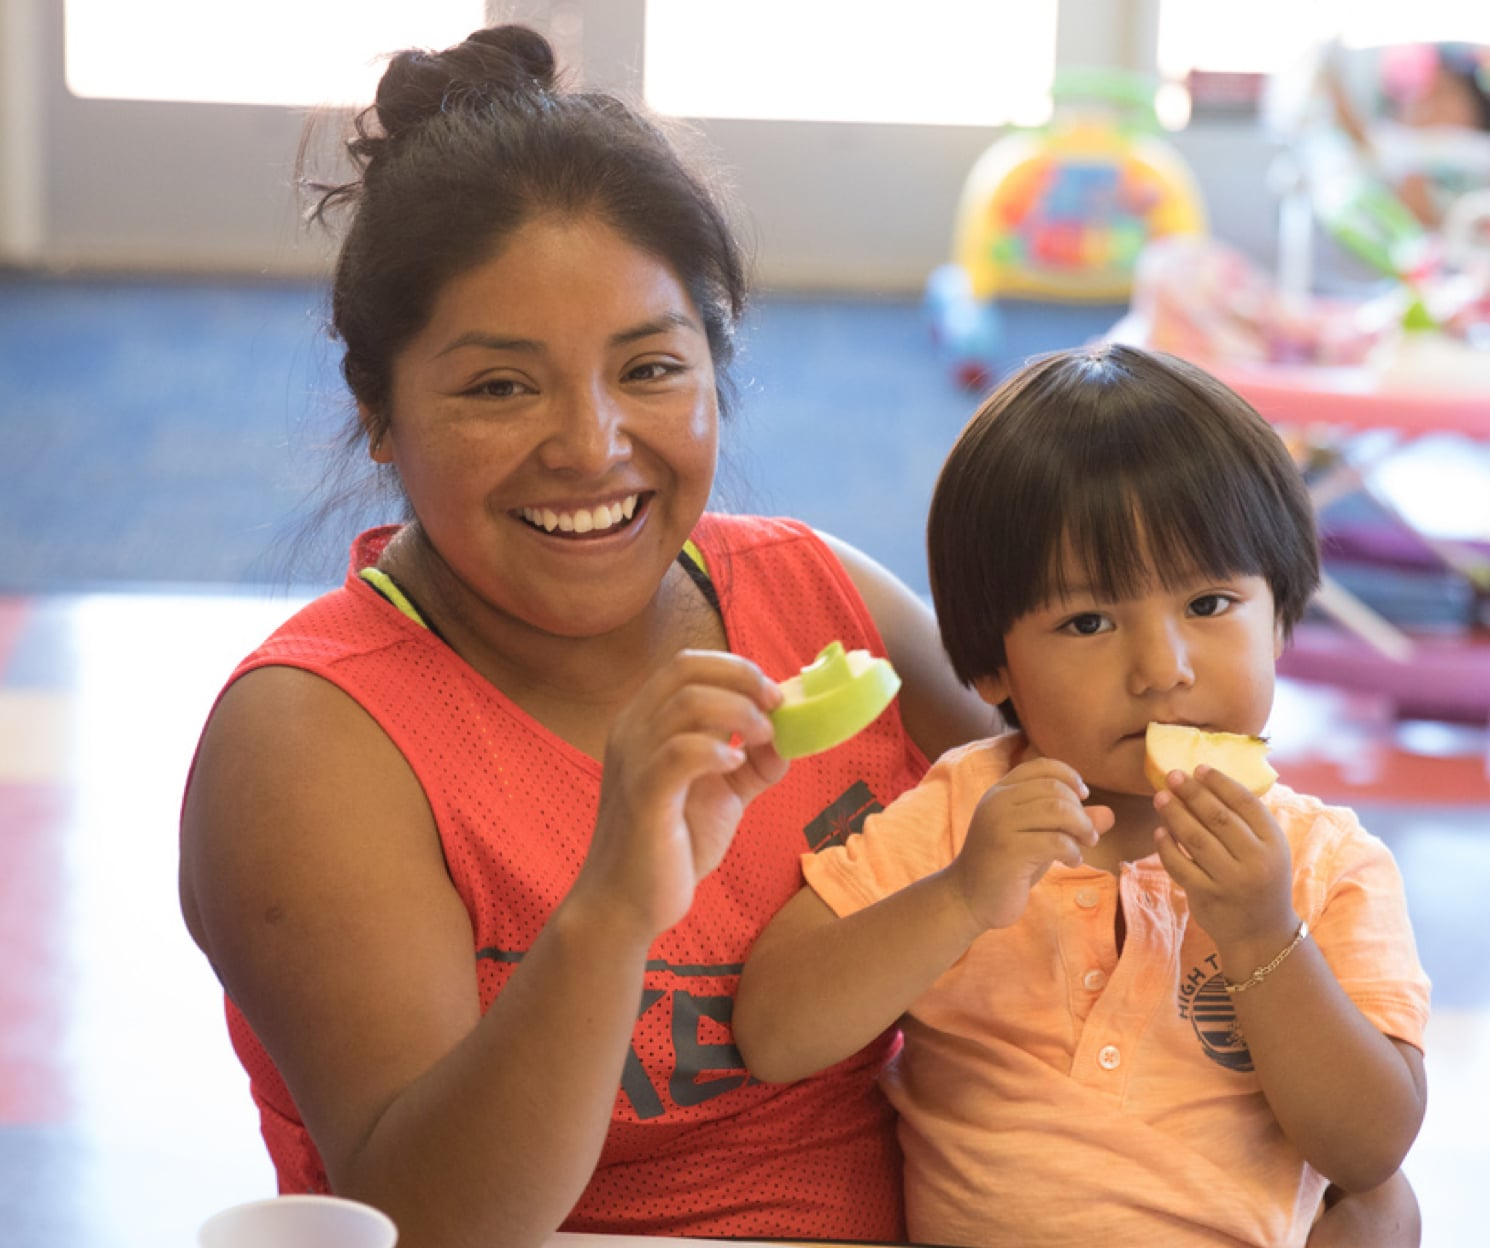 Silvia Isaac and Juaquin, eating snacks at the East Palo Alto YMCA's Nana Y Yo program to help caregivers and pre-school age children focus on developing and learn together.